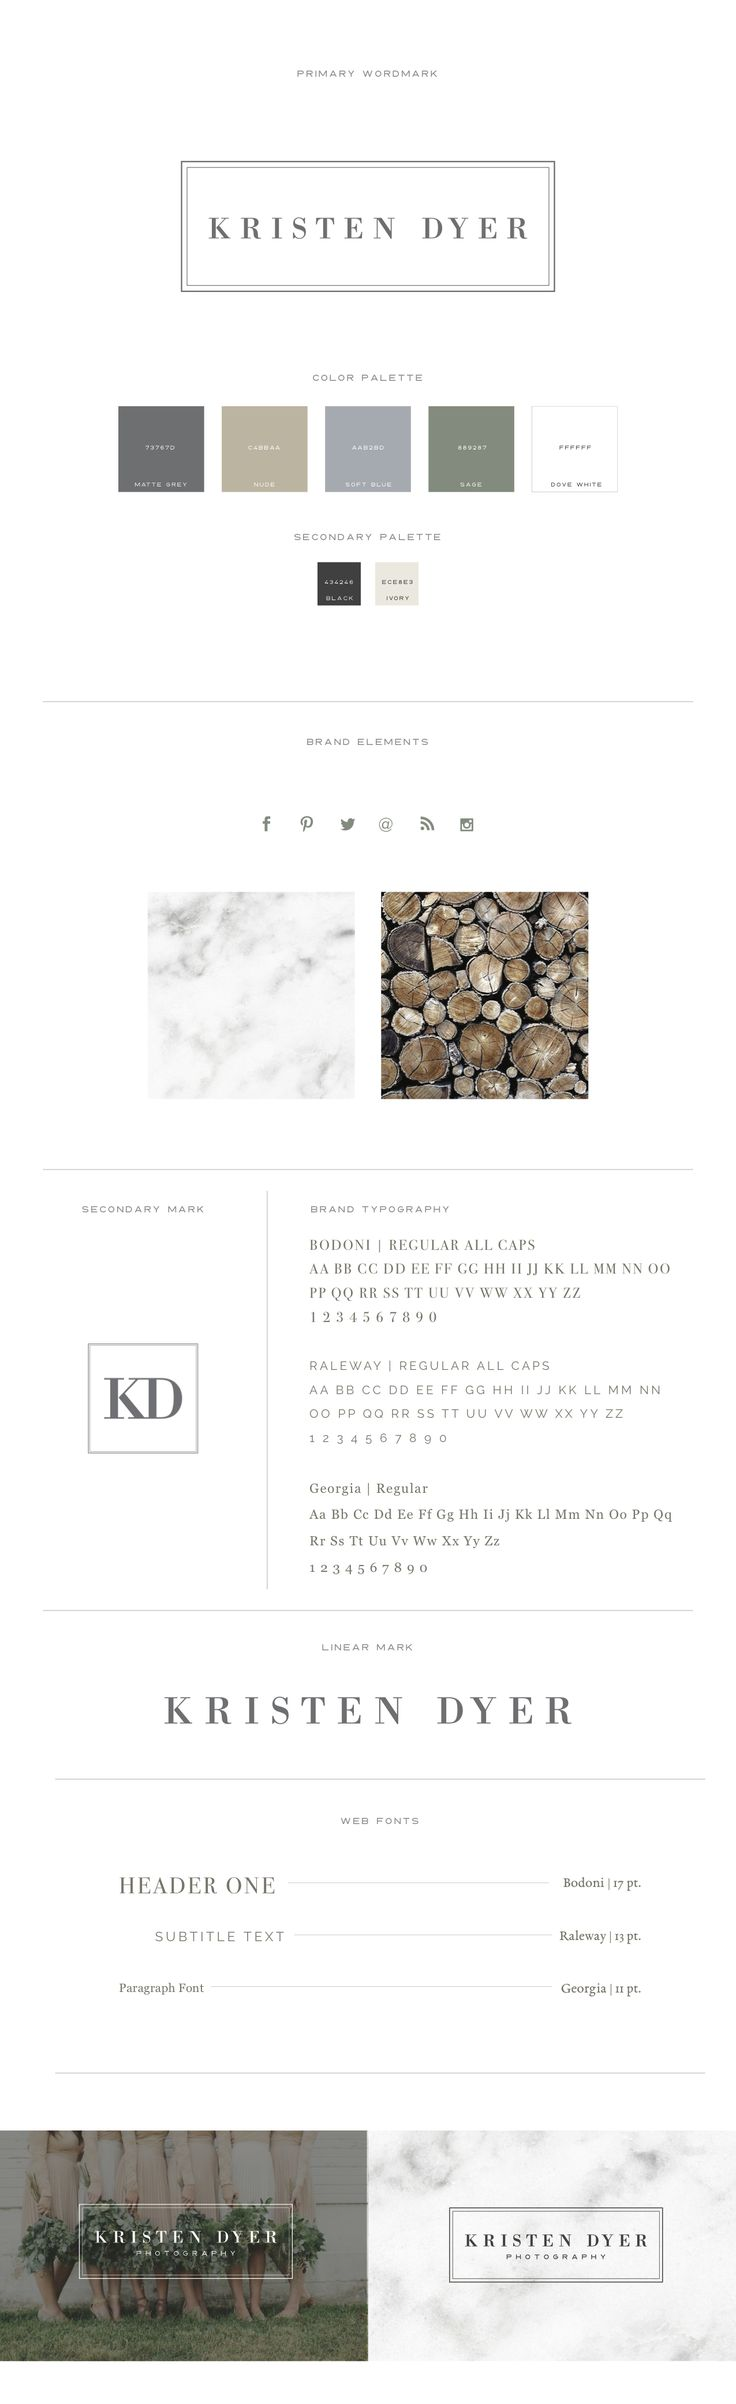 Brand Kits u0026 Mood Boards example for